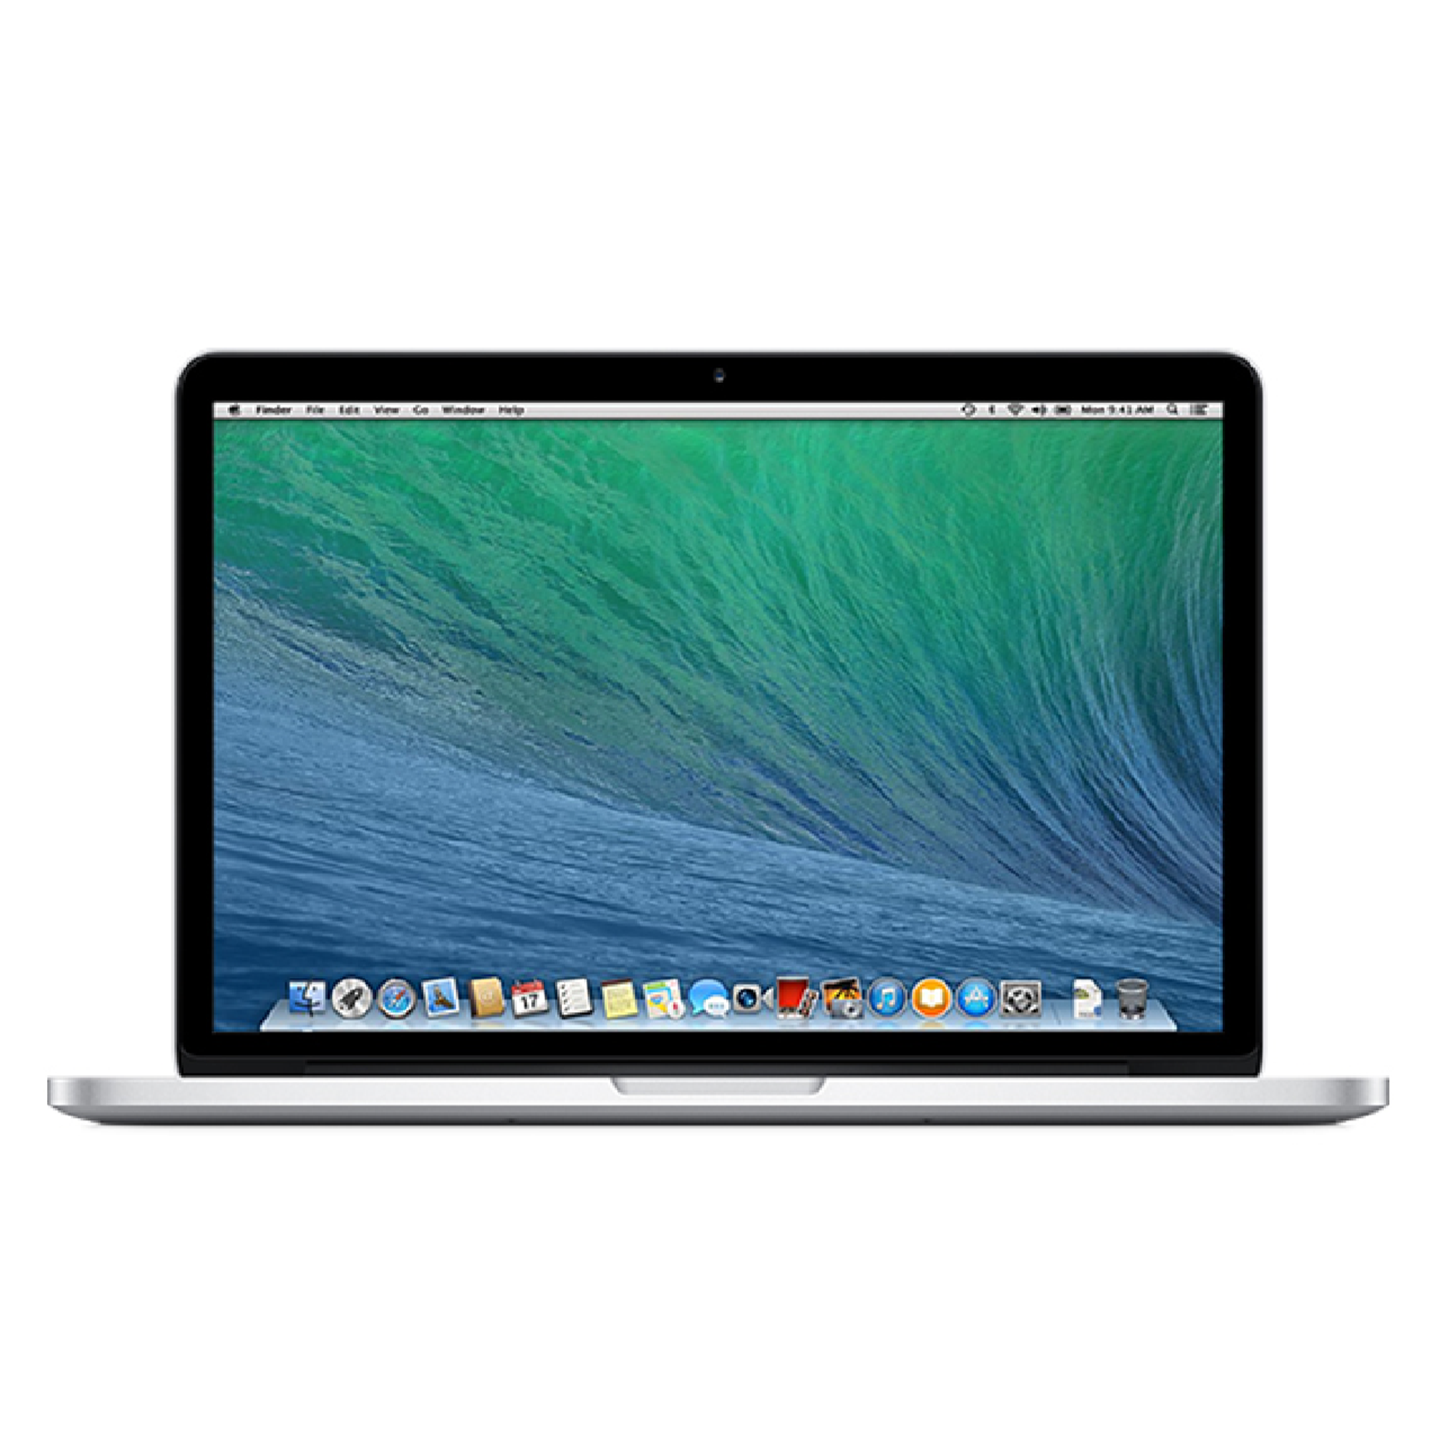 MacBook Pro (Retina, 13-inch, Late 2013)Core i7/16GB/SSD512GB E789